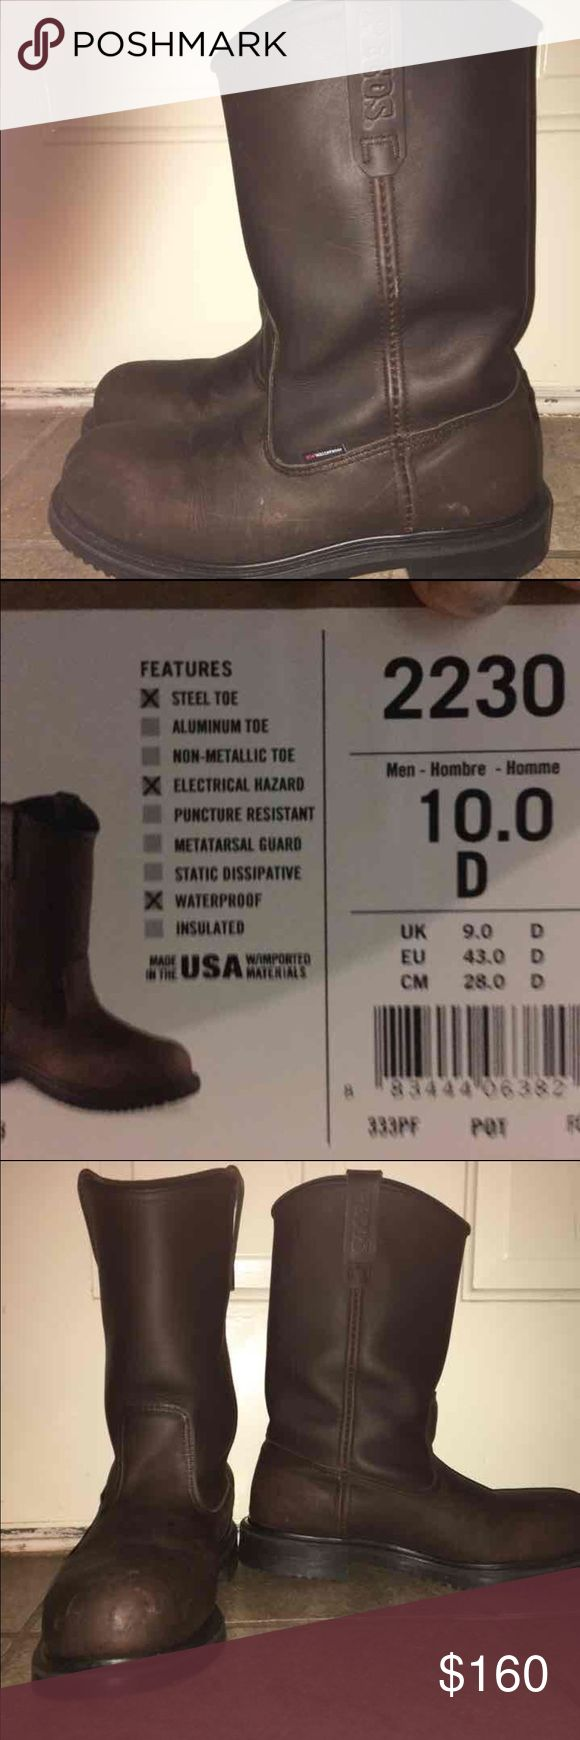 Like new. Mens Red Wing Boots Size 10. Wore for a week but prefers a different brand. Paid $265. My lost. Info of boot in 2nd pic. Firm on price. Cheaper on Ⓜ️ercari. Red Wing Shoes Shoes Boots